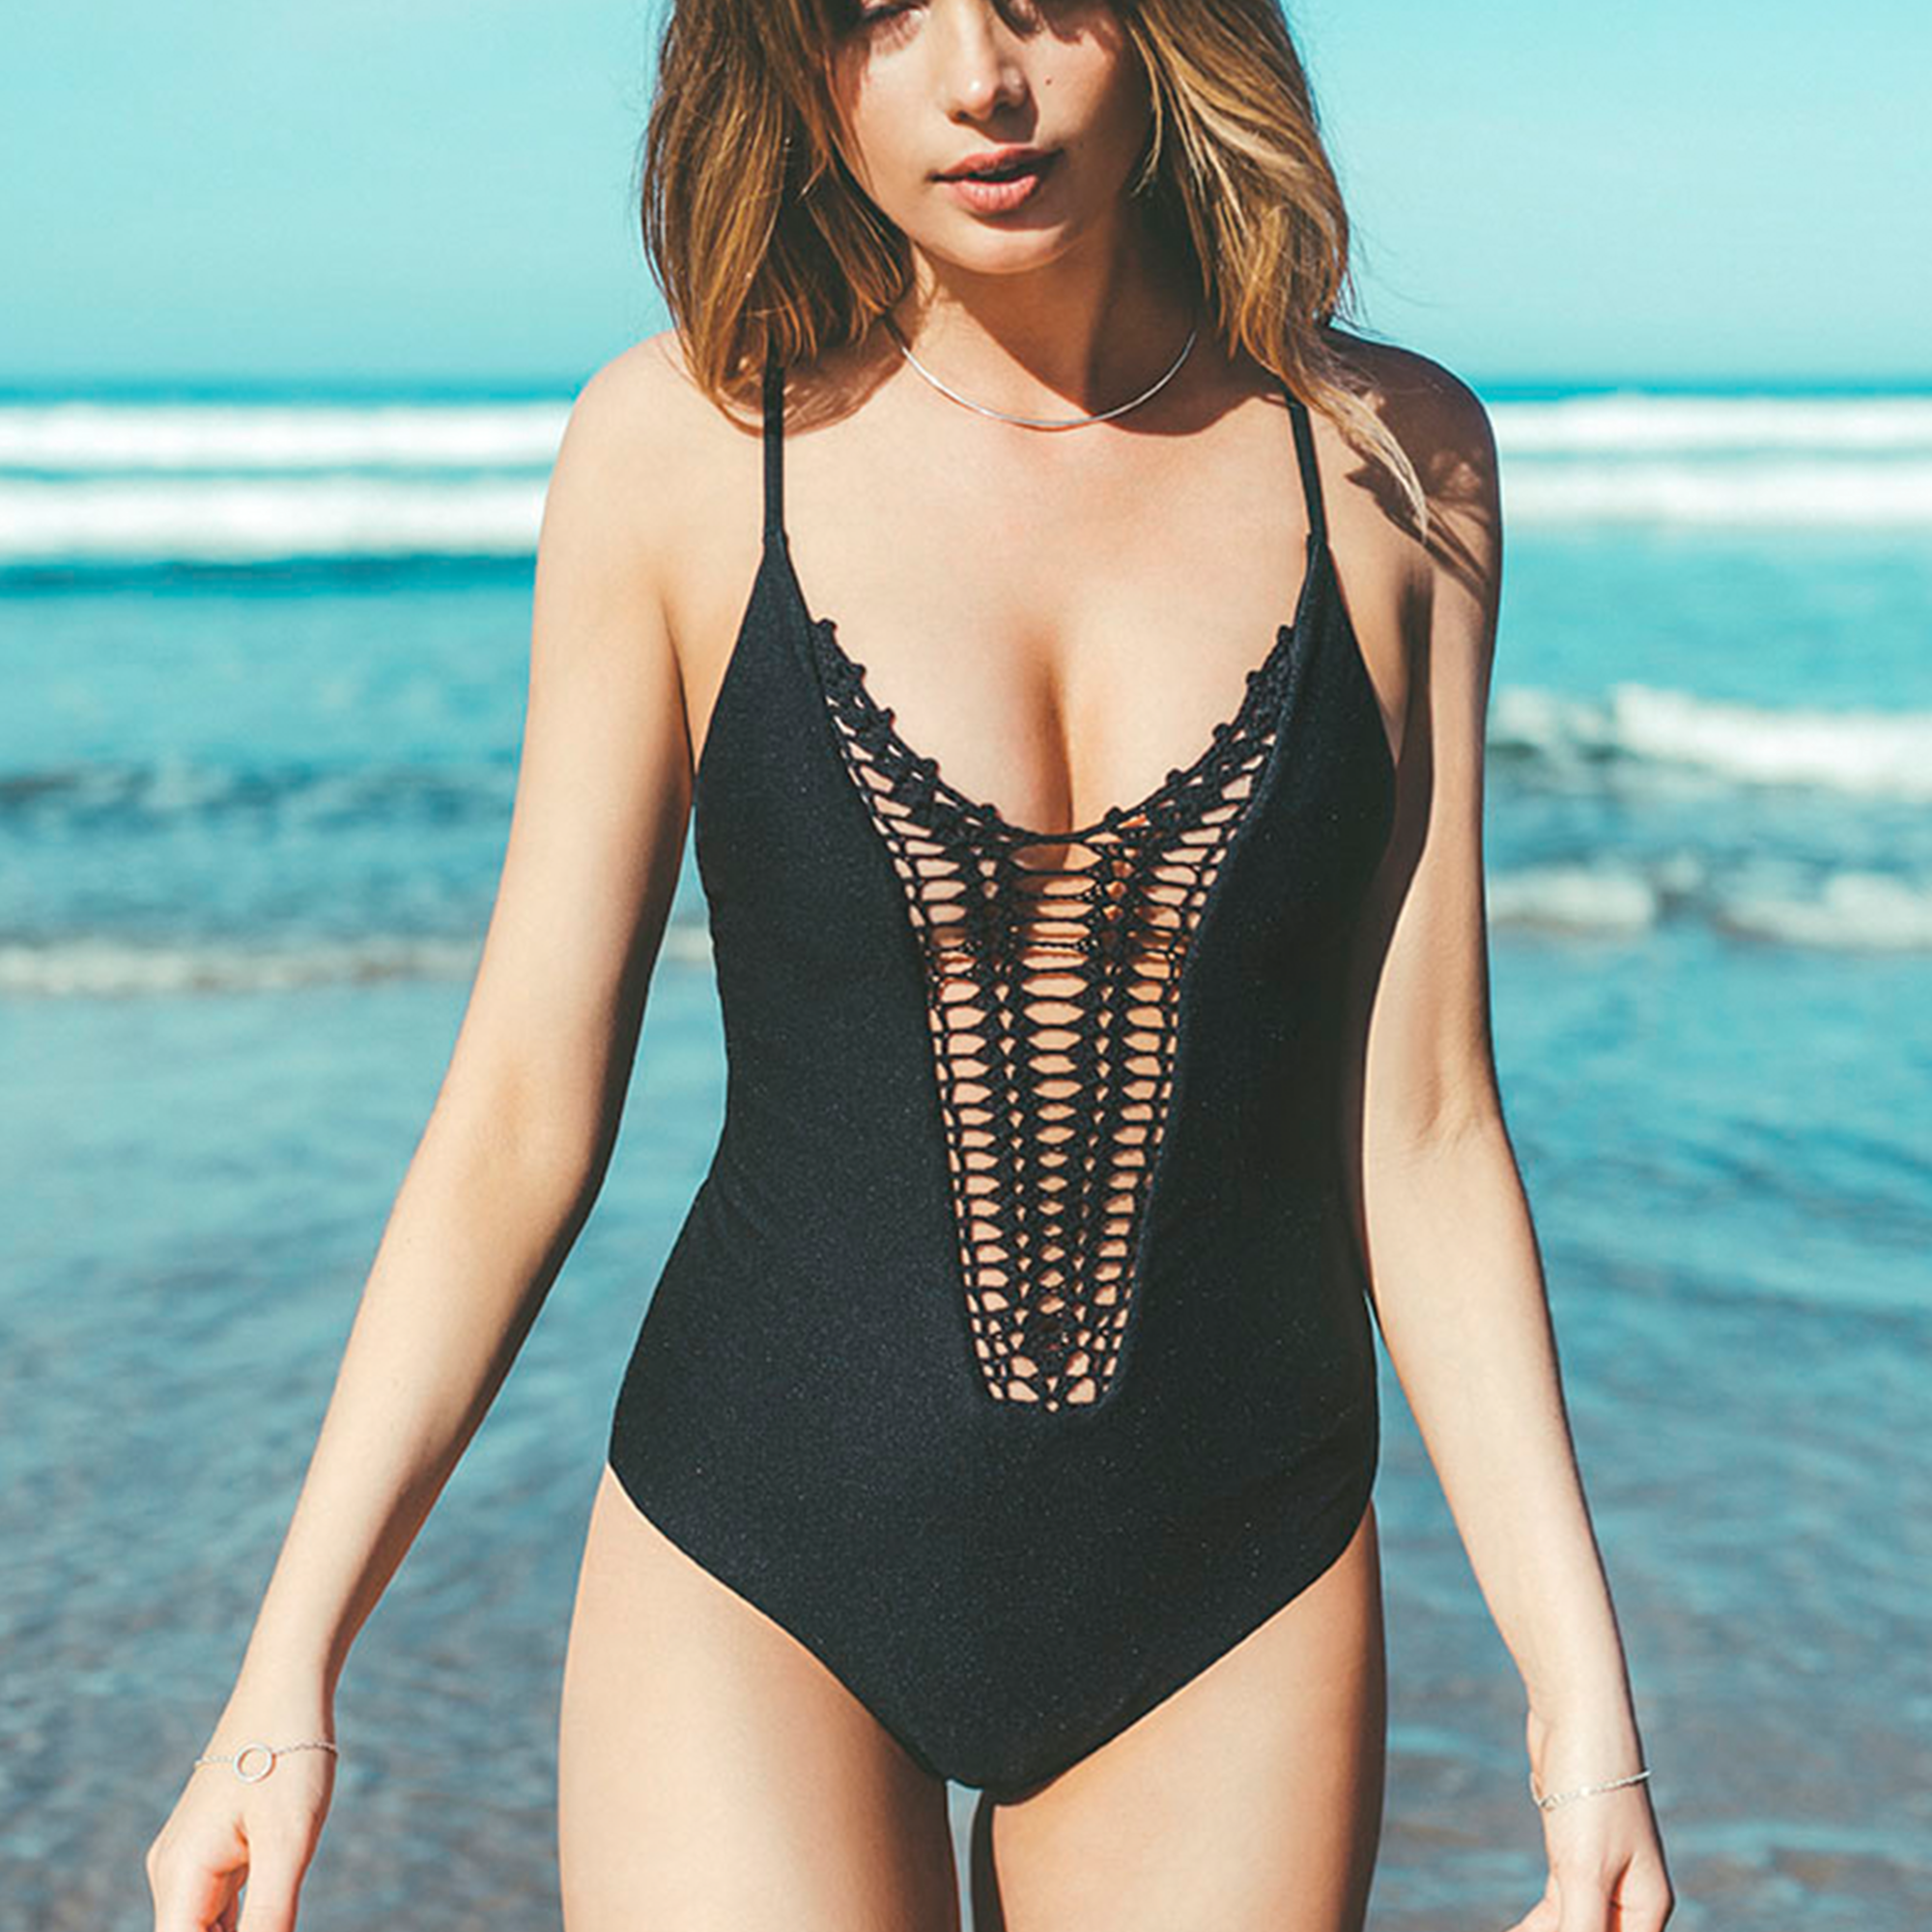 55b2c8dc3b886 Get free shipping at the Billabong online store. Don't act like your wild  side is knot in love with this crochet one piece.